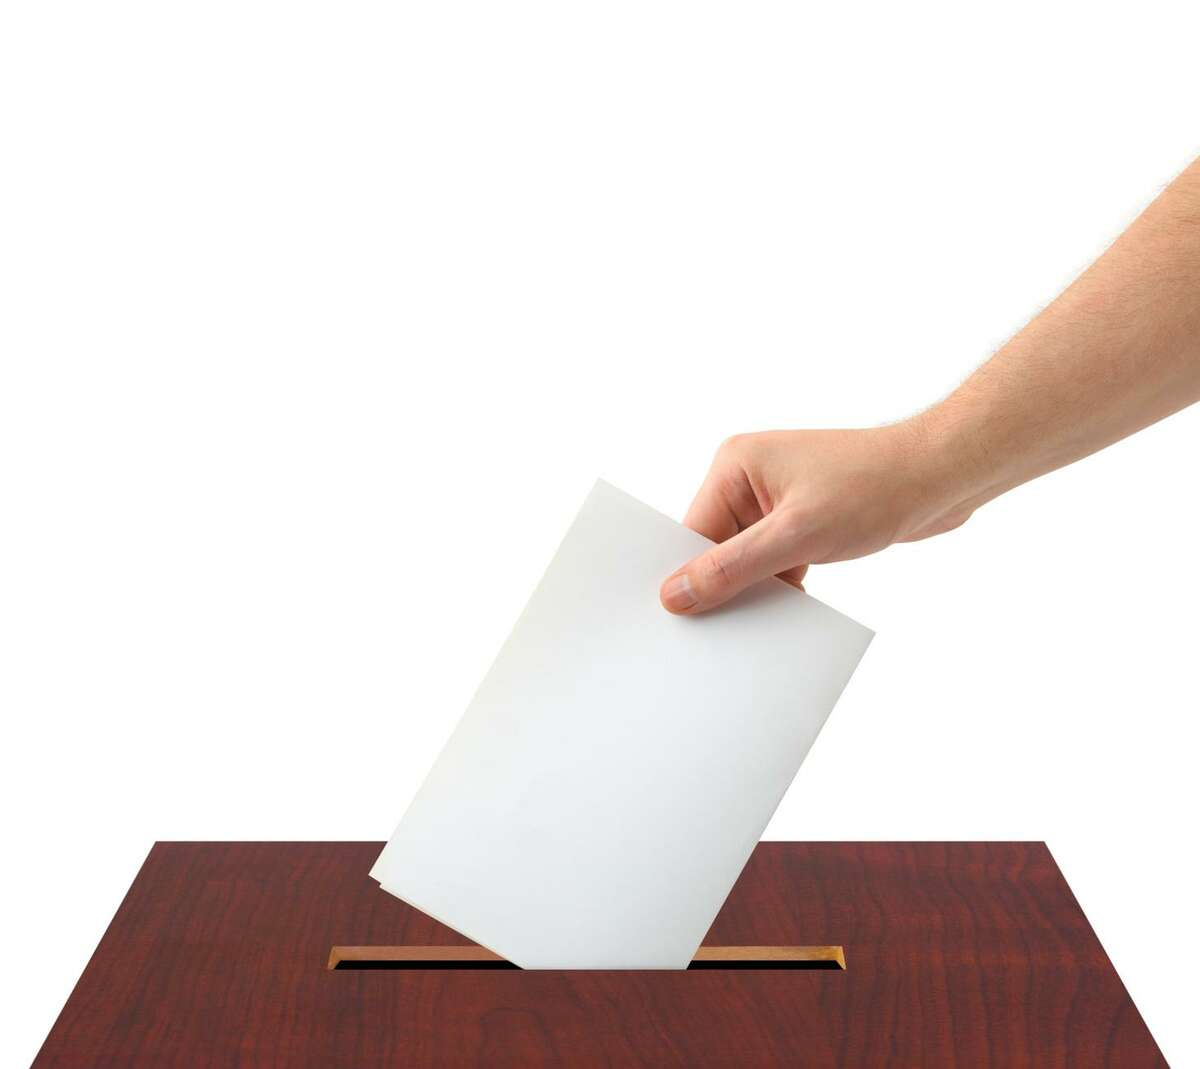 When Alvin voters head to the polls May 1 they will find an extensive list of propositions to amend 39 sections of the 58-year-old city charter.